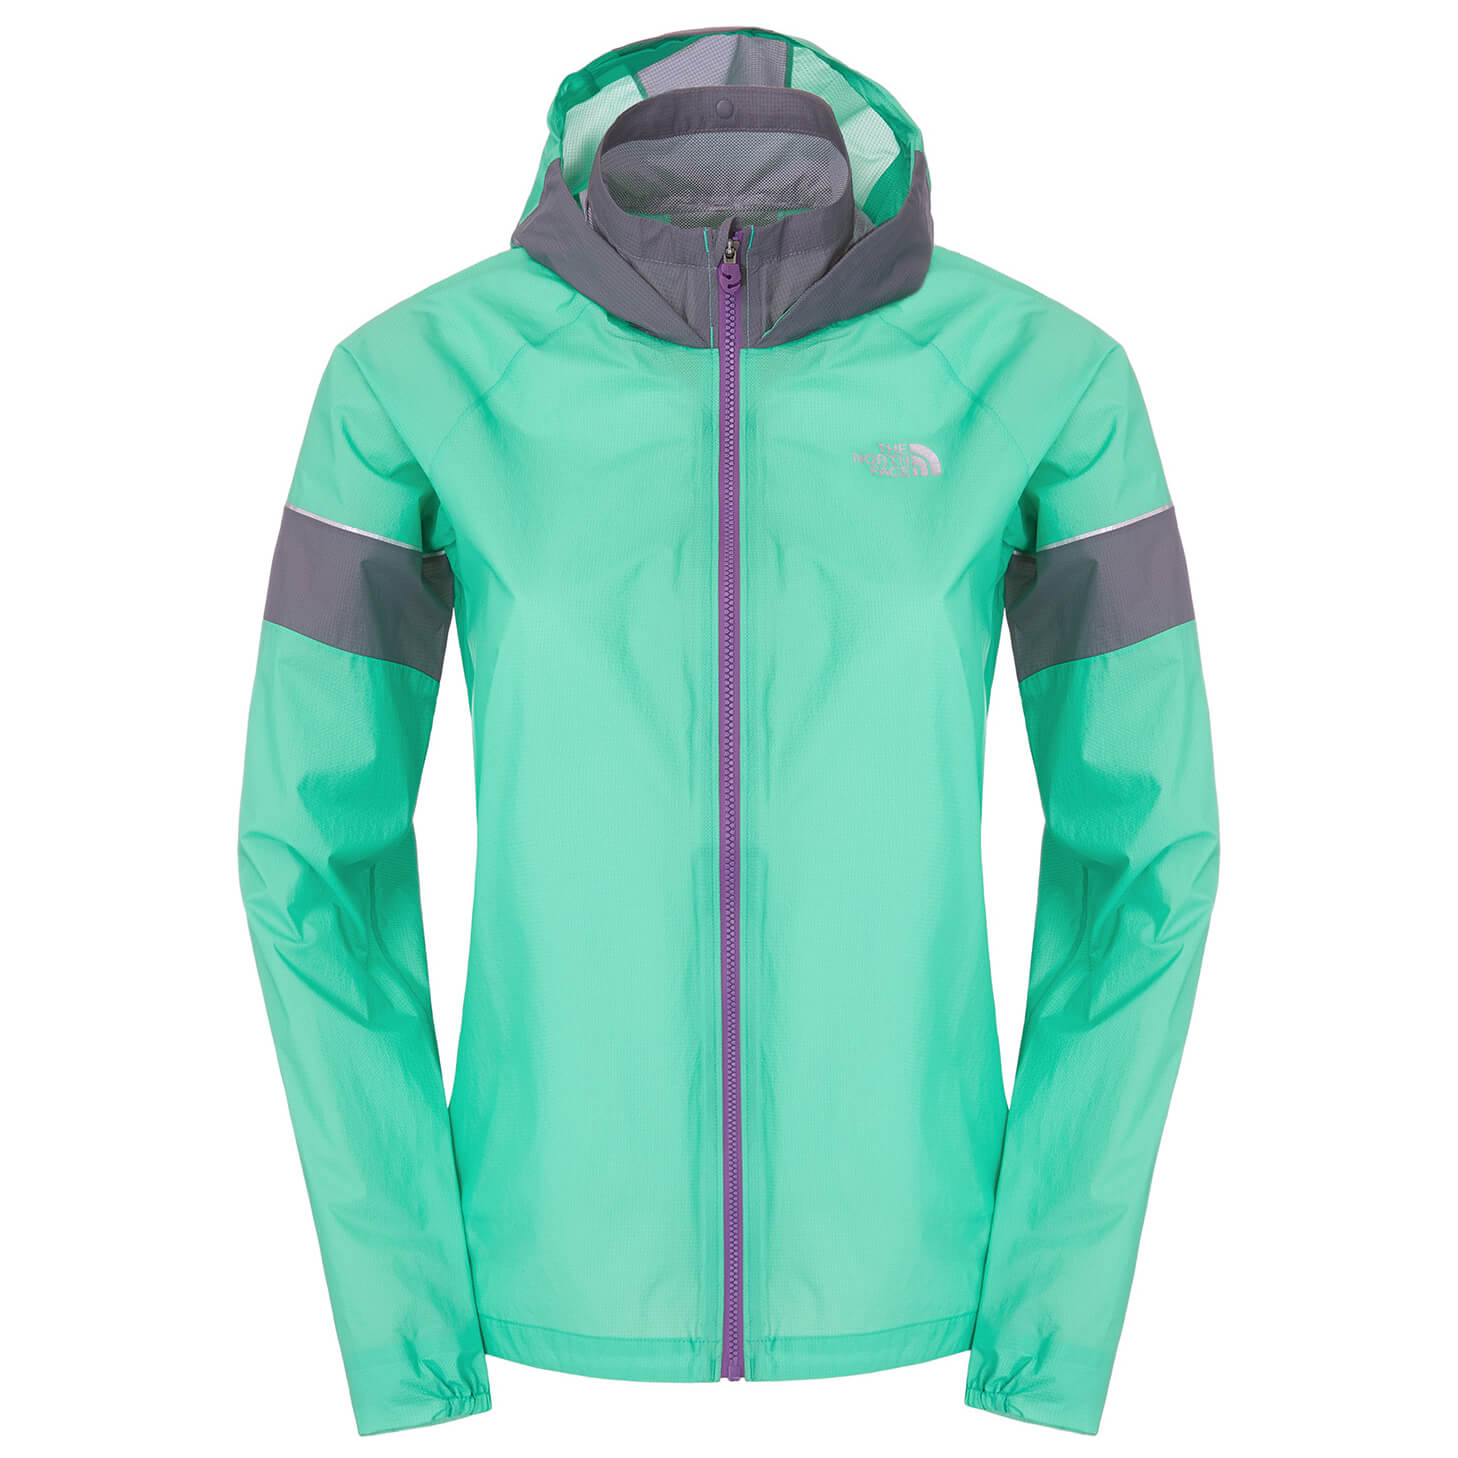 aa8908ee7905 The North Face Storm Stow Jacket - Running Jacket Women s